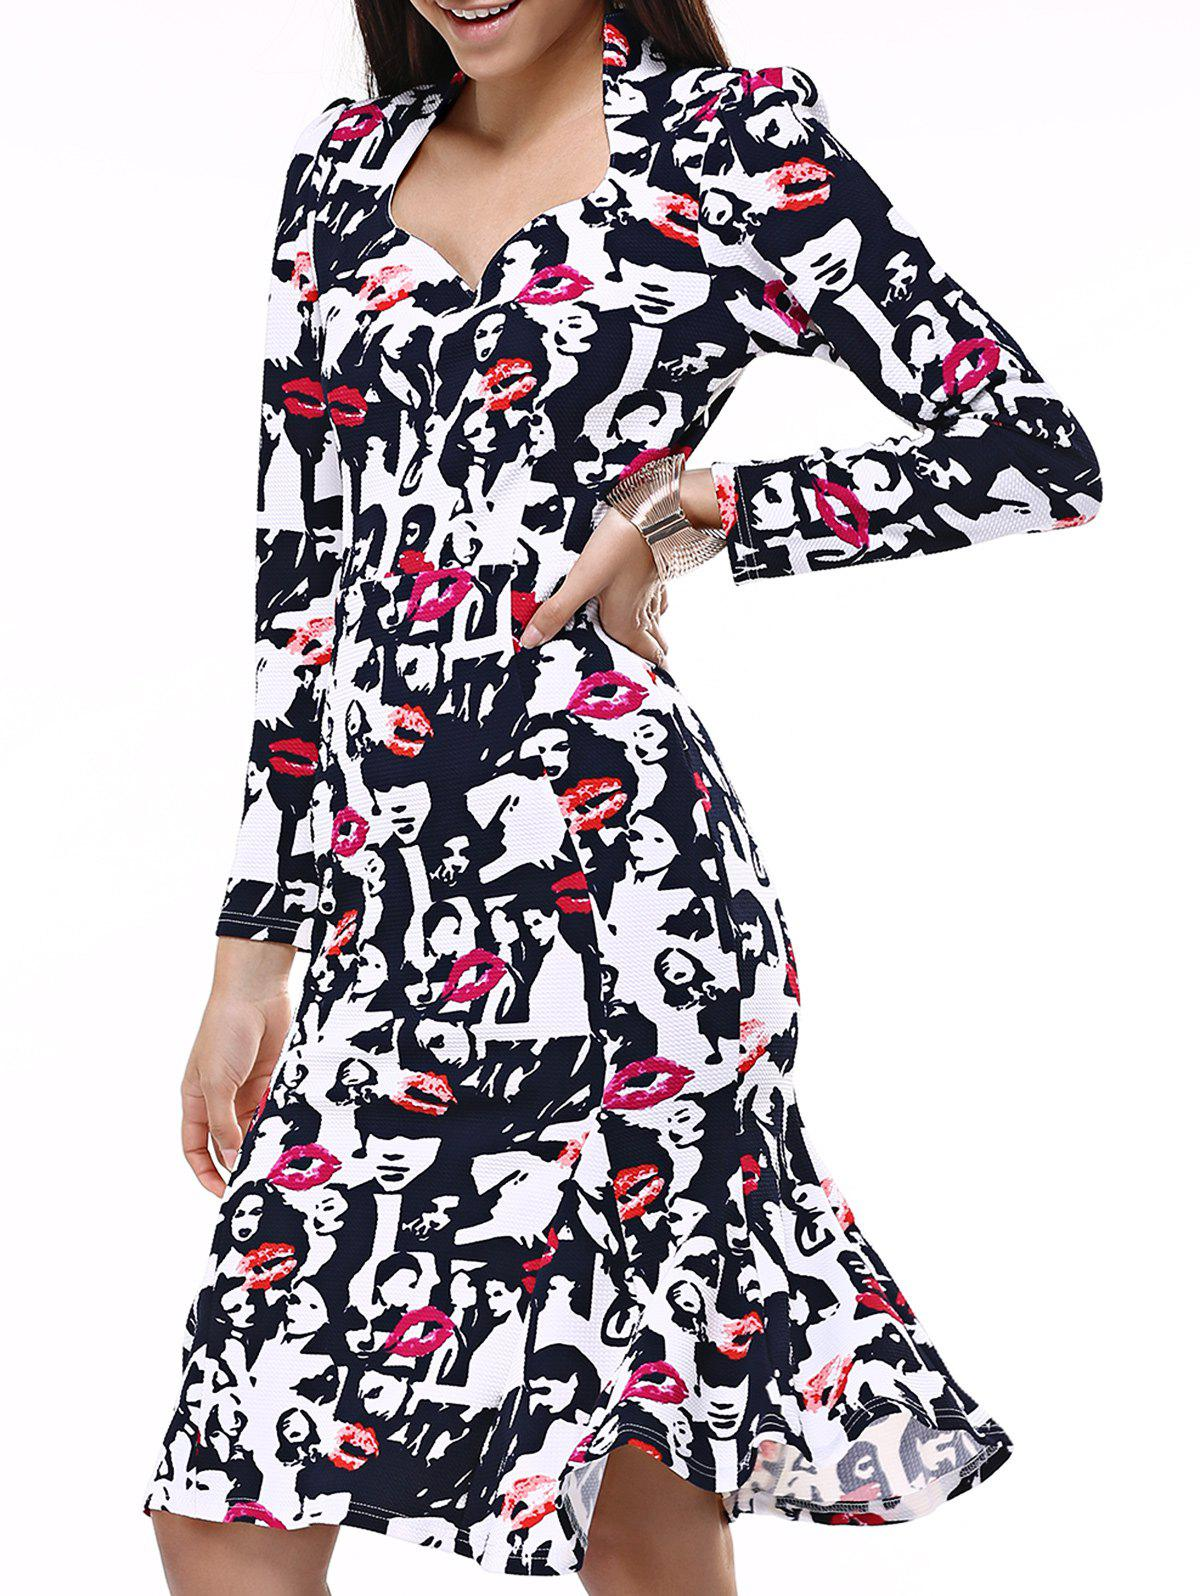 Charming Face Print Mermaid Dress For Women